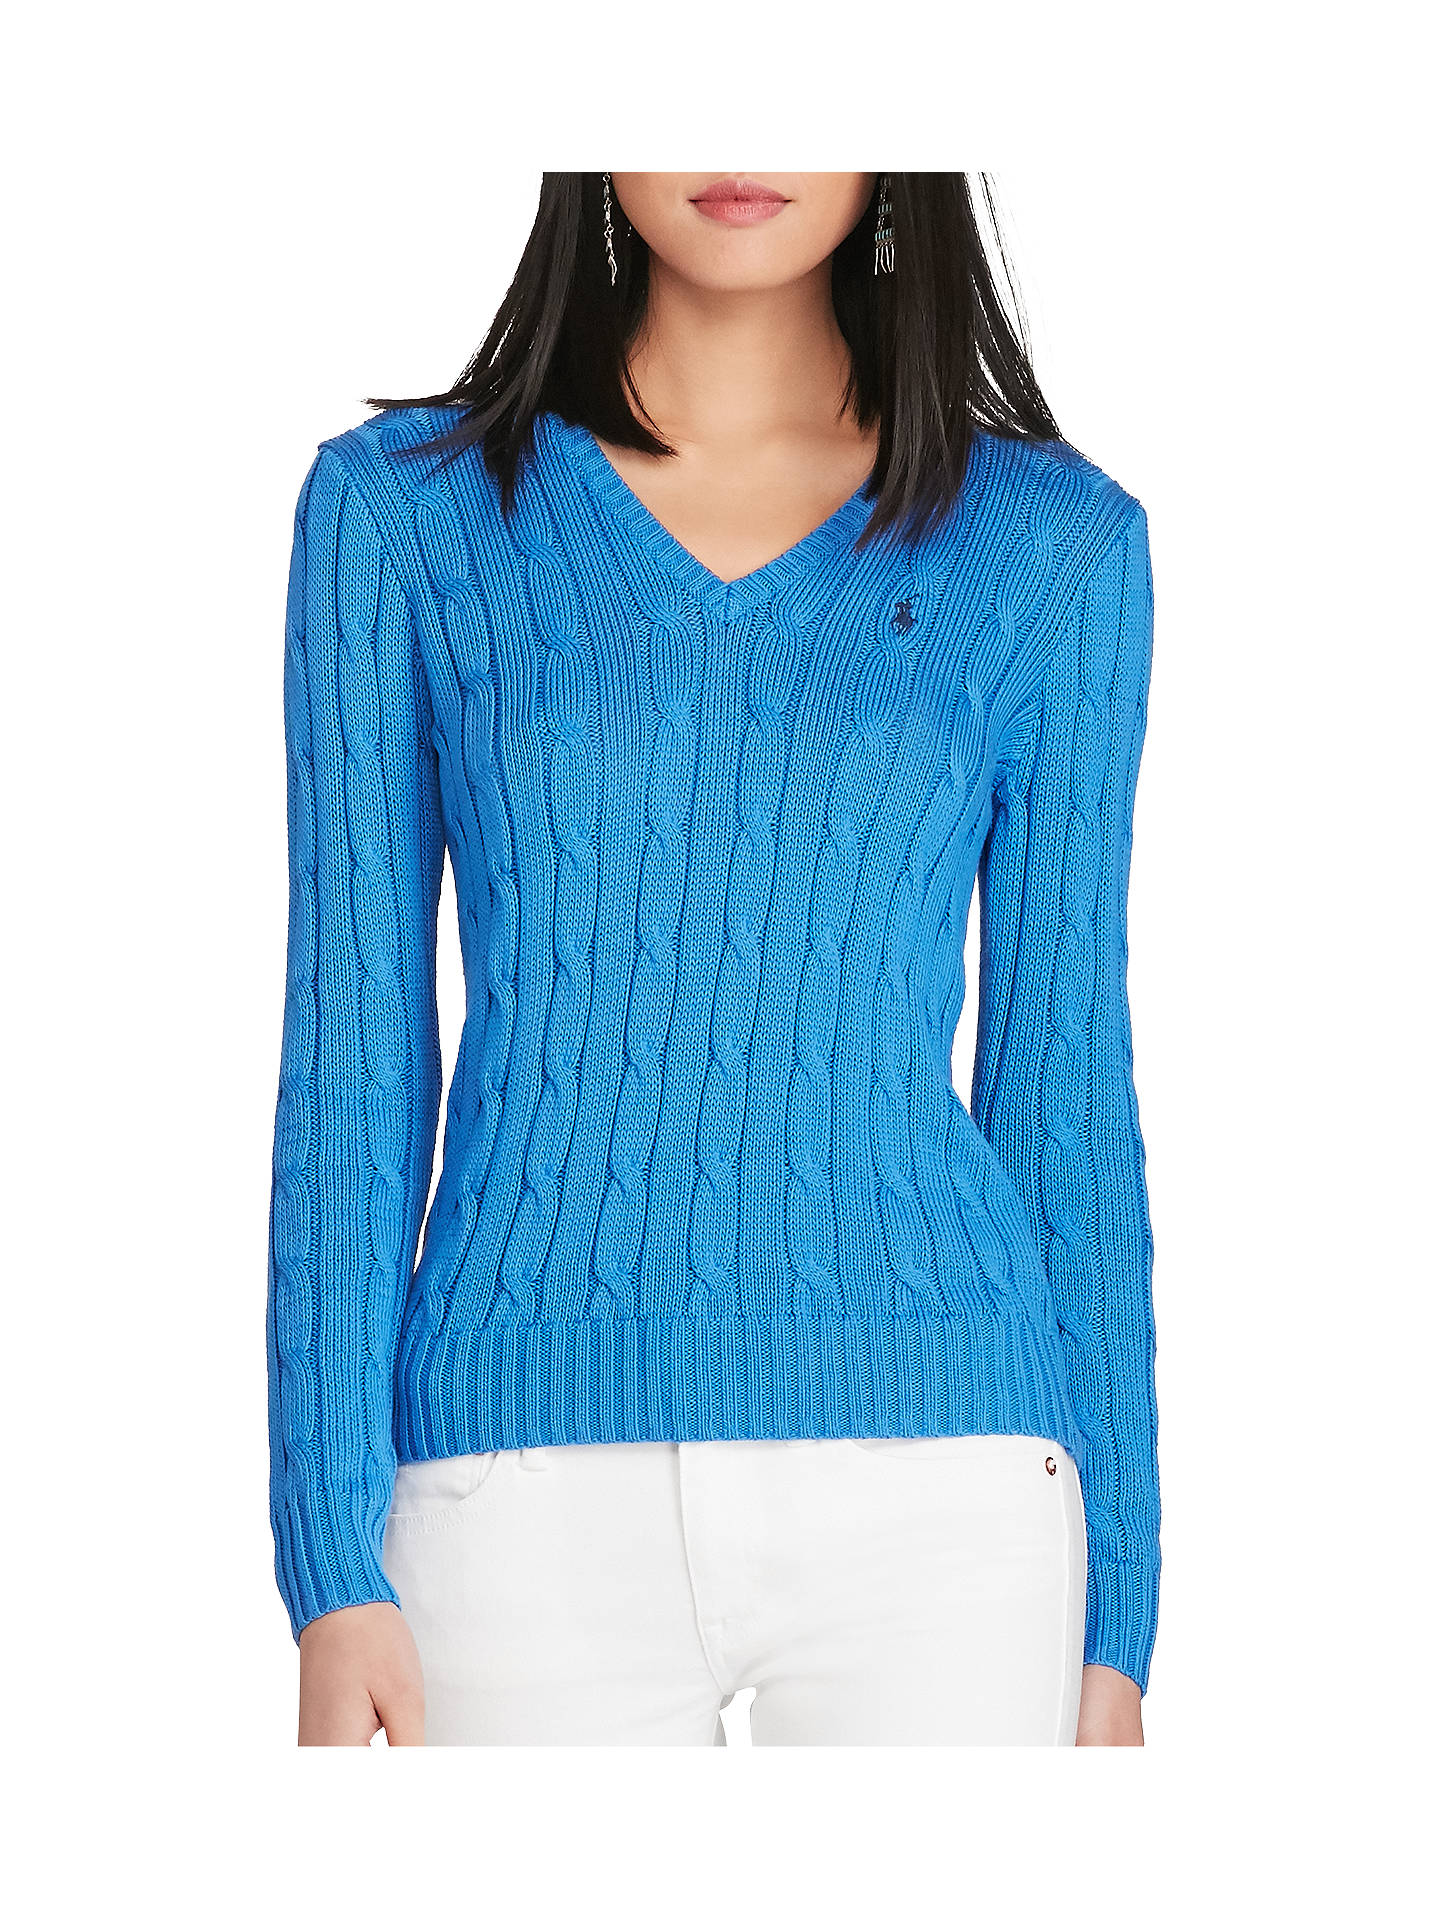 ca39427ce37 Polo Ralph Lauren V-Neck Cable Knit Jumper at John Lewis & Partners